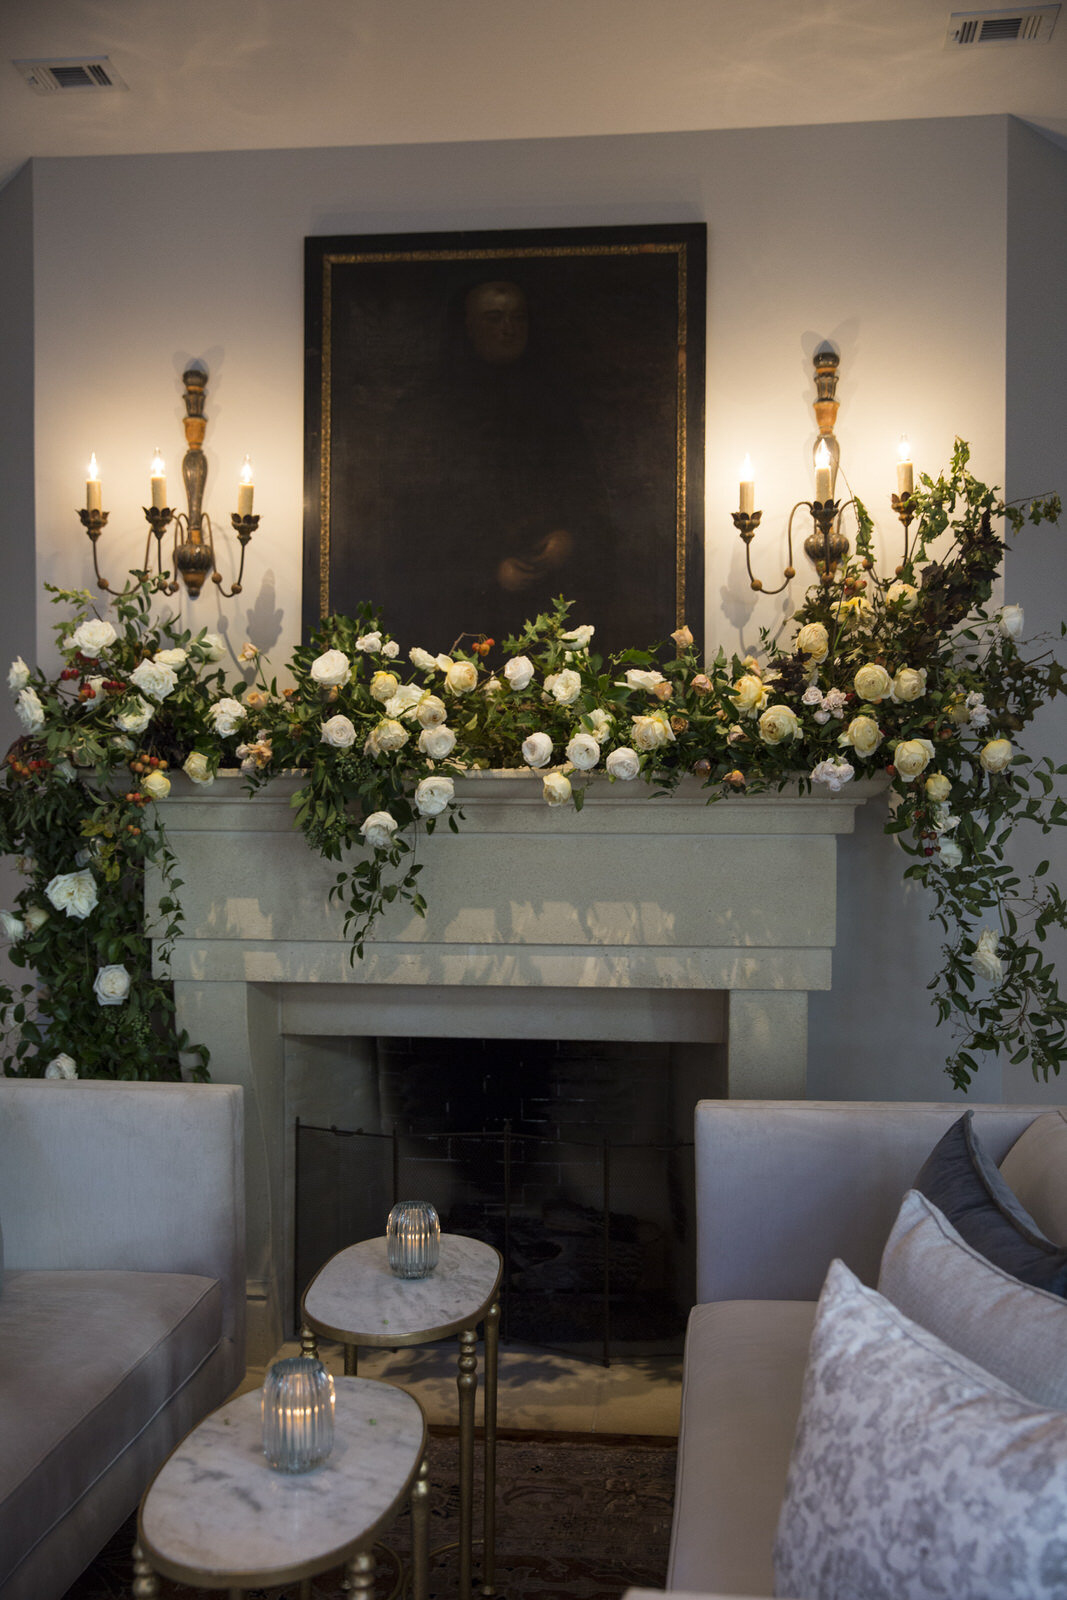 Fireplace installation with Rentals provided by Events in Bloom. Houston, Texas wedding with Jennifer Kaldis of Keely Thorne Events. Maxit Flower Design.